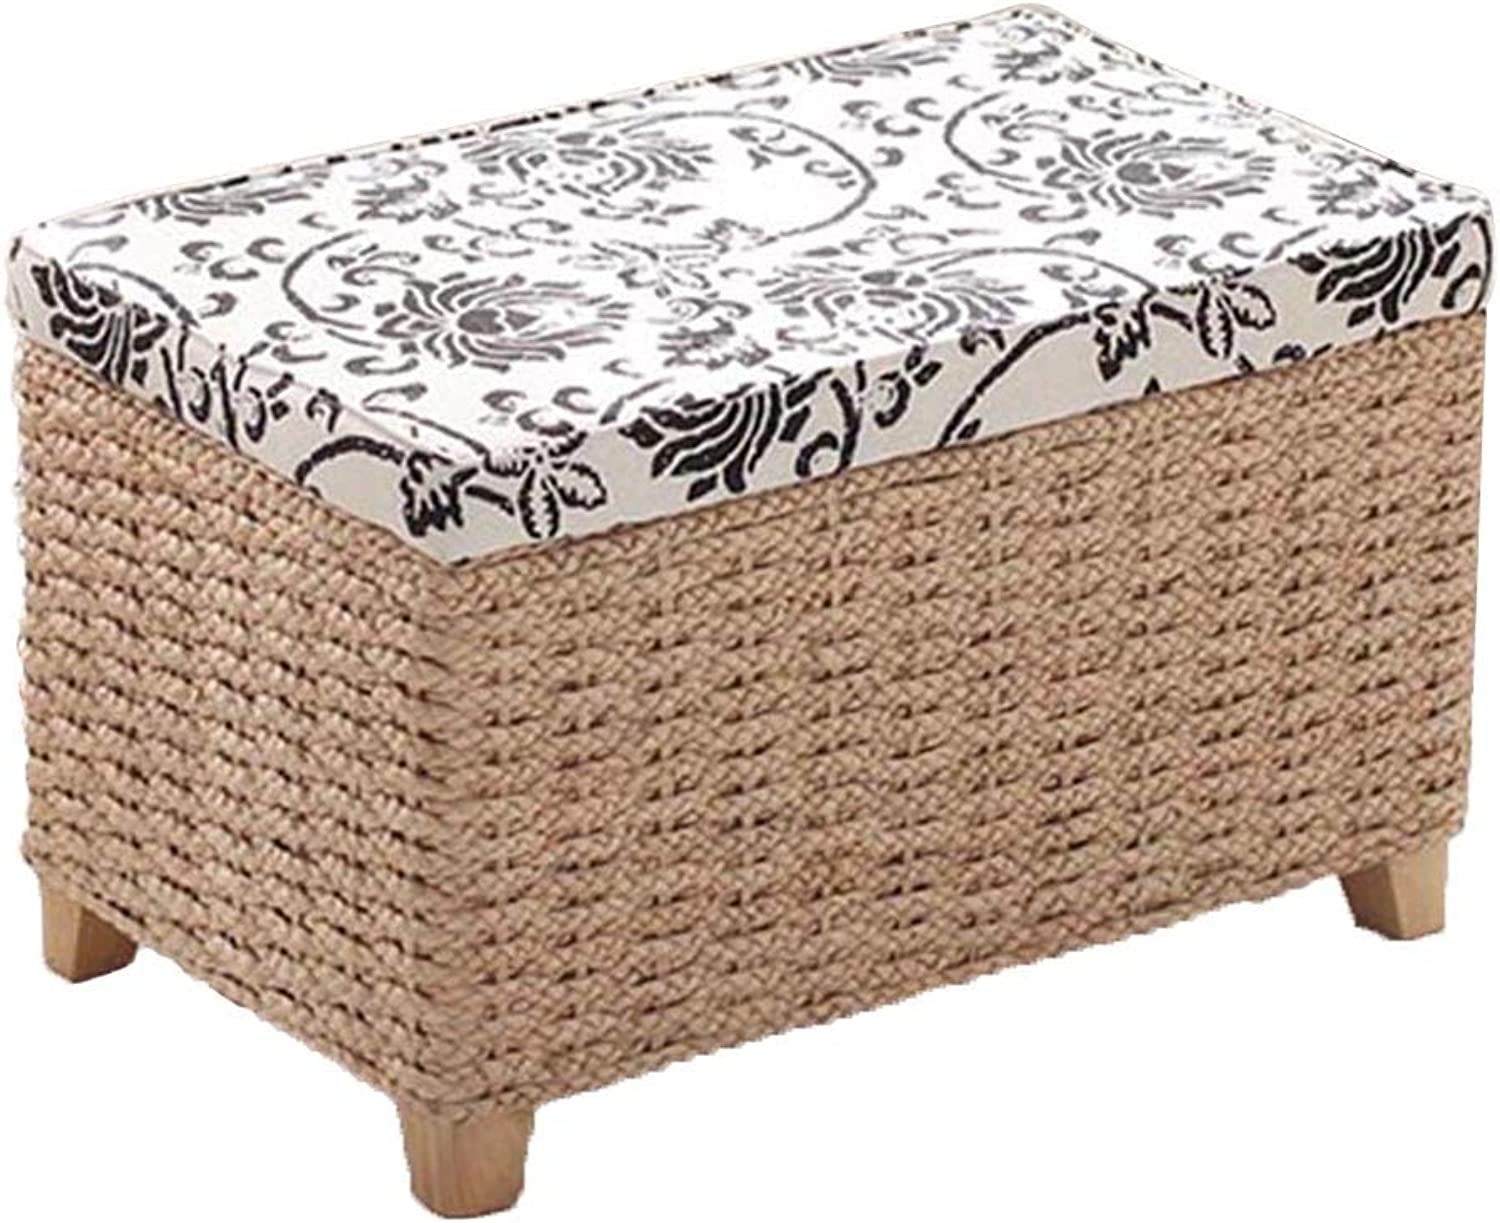 Tingting-Stools, Straw Multifunction Storage Change shoes Can Sit Box Removable Cover Cloth (color   Wood, Size   51  31  32)